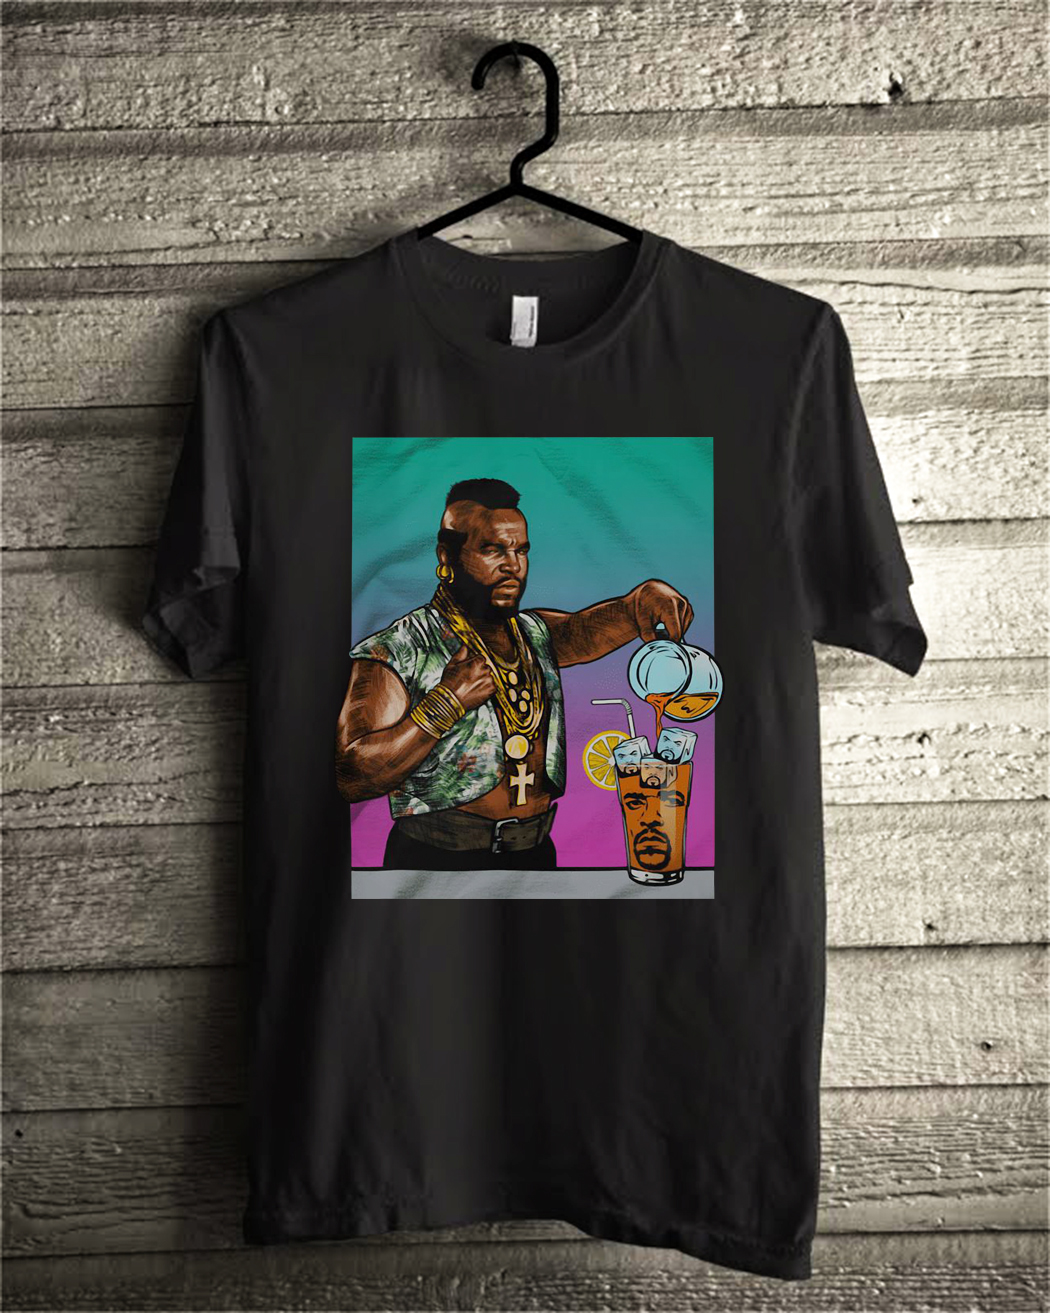 Mr. T Drinking Iced Tea Ice Cube shirt